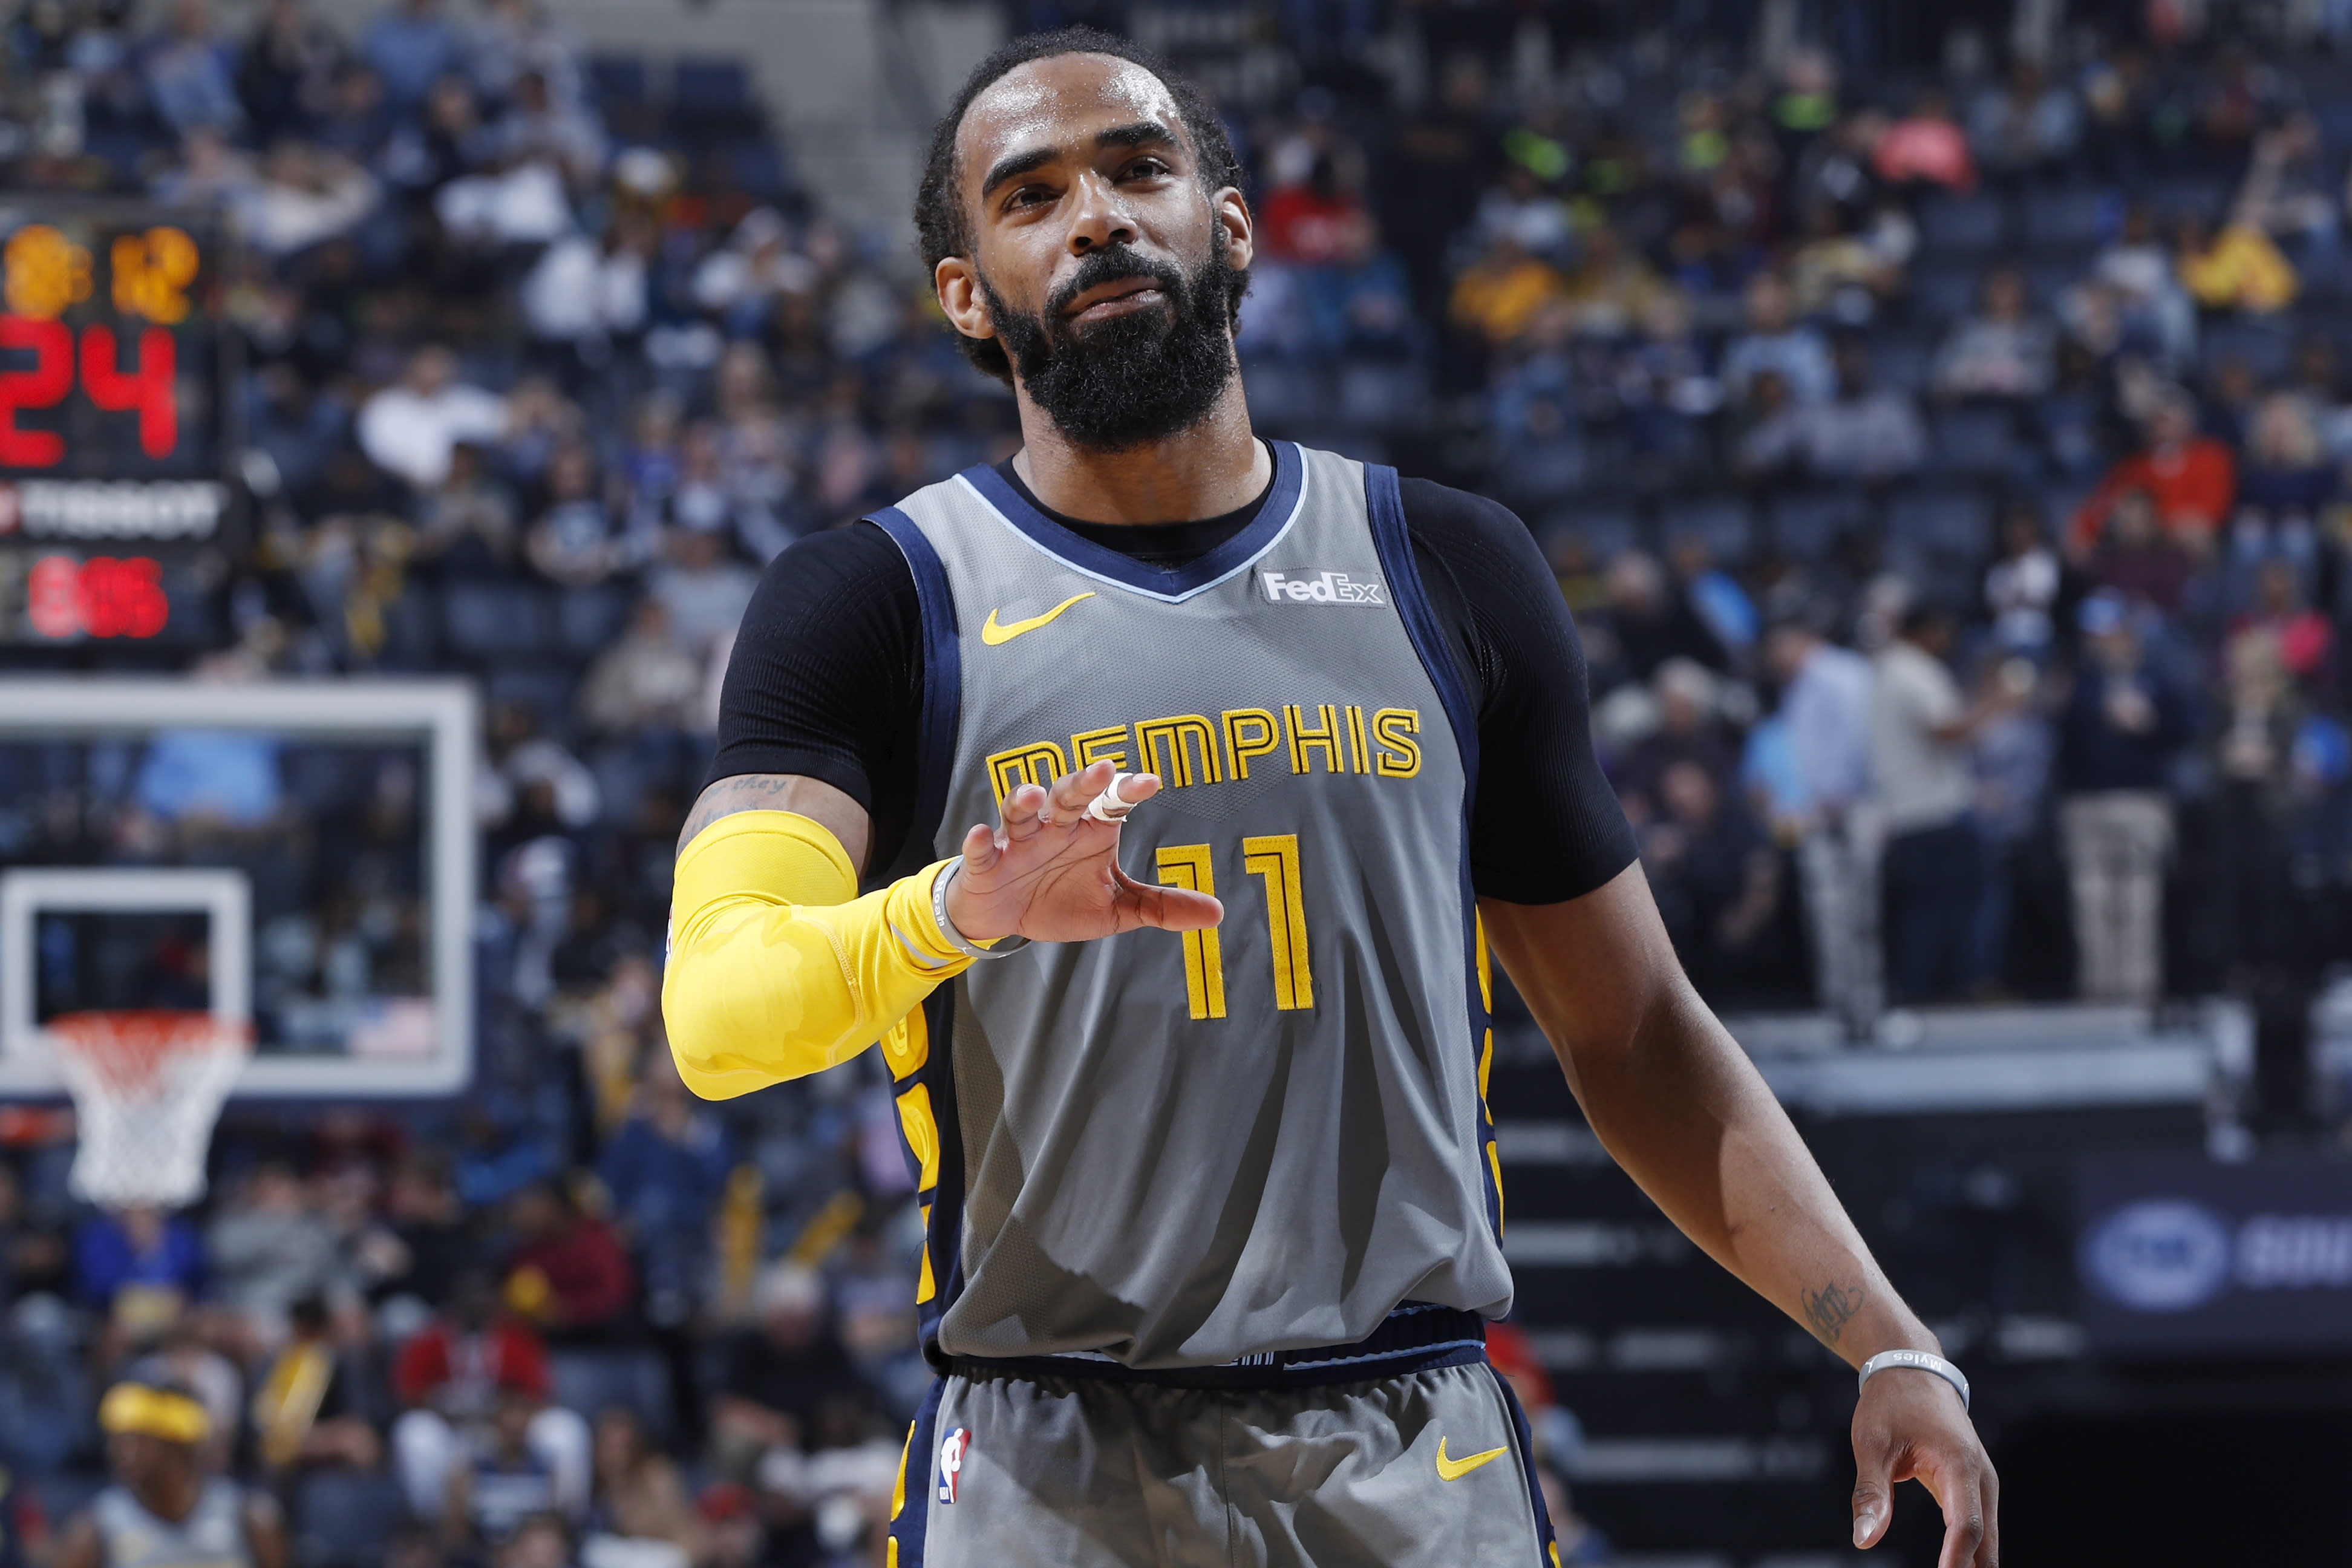 save off 3a920 1ba44 Grizzlies' Mike Conley Jr. traded to Jazz, per reports